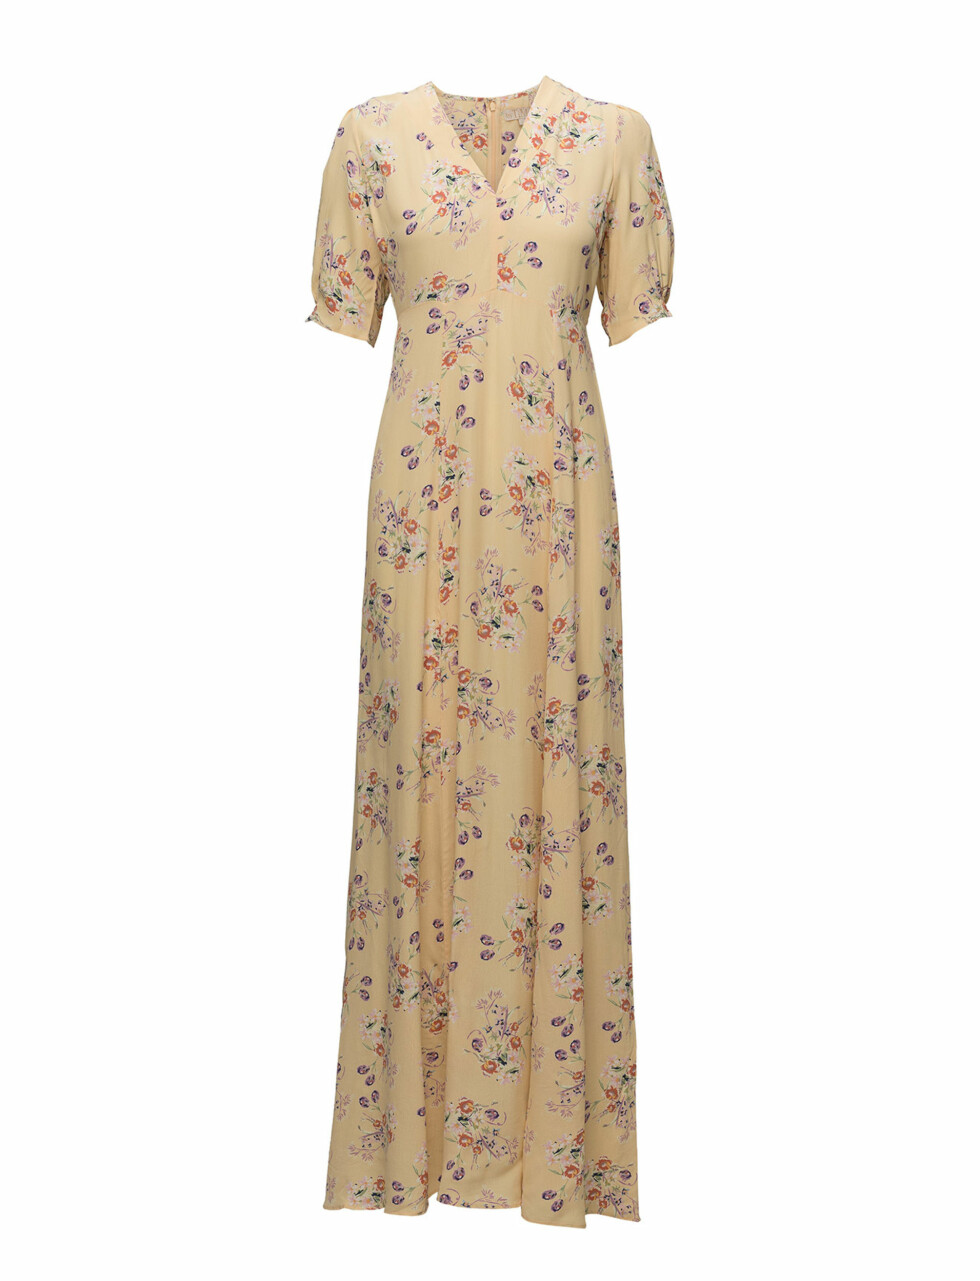 <strong>Kjole fra ByTiMo |2799,-| https:</strong>//www.boozt.com/se/sv/by-ti-mo/50-s-maxi-dress_17229561/17229566?navId=67378&group=listing&position=1000000